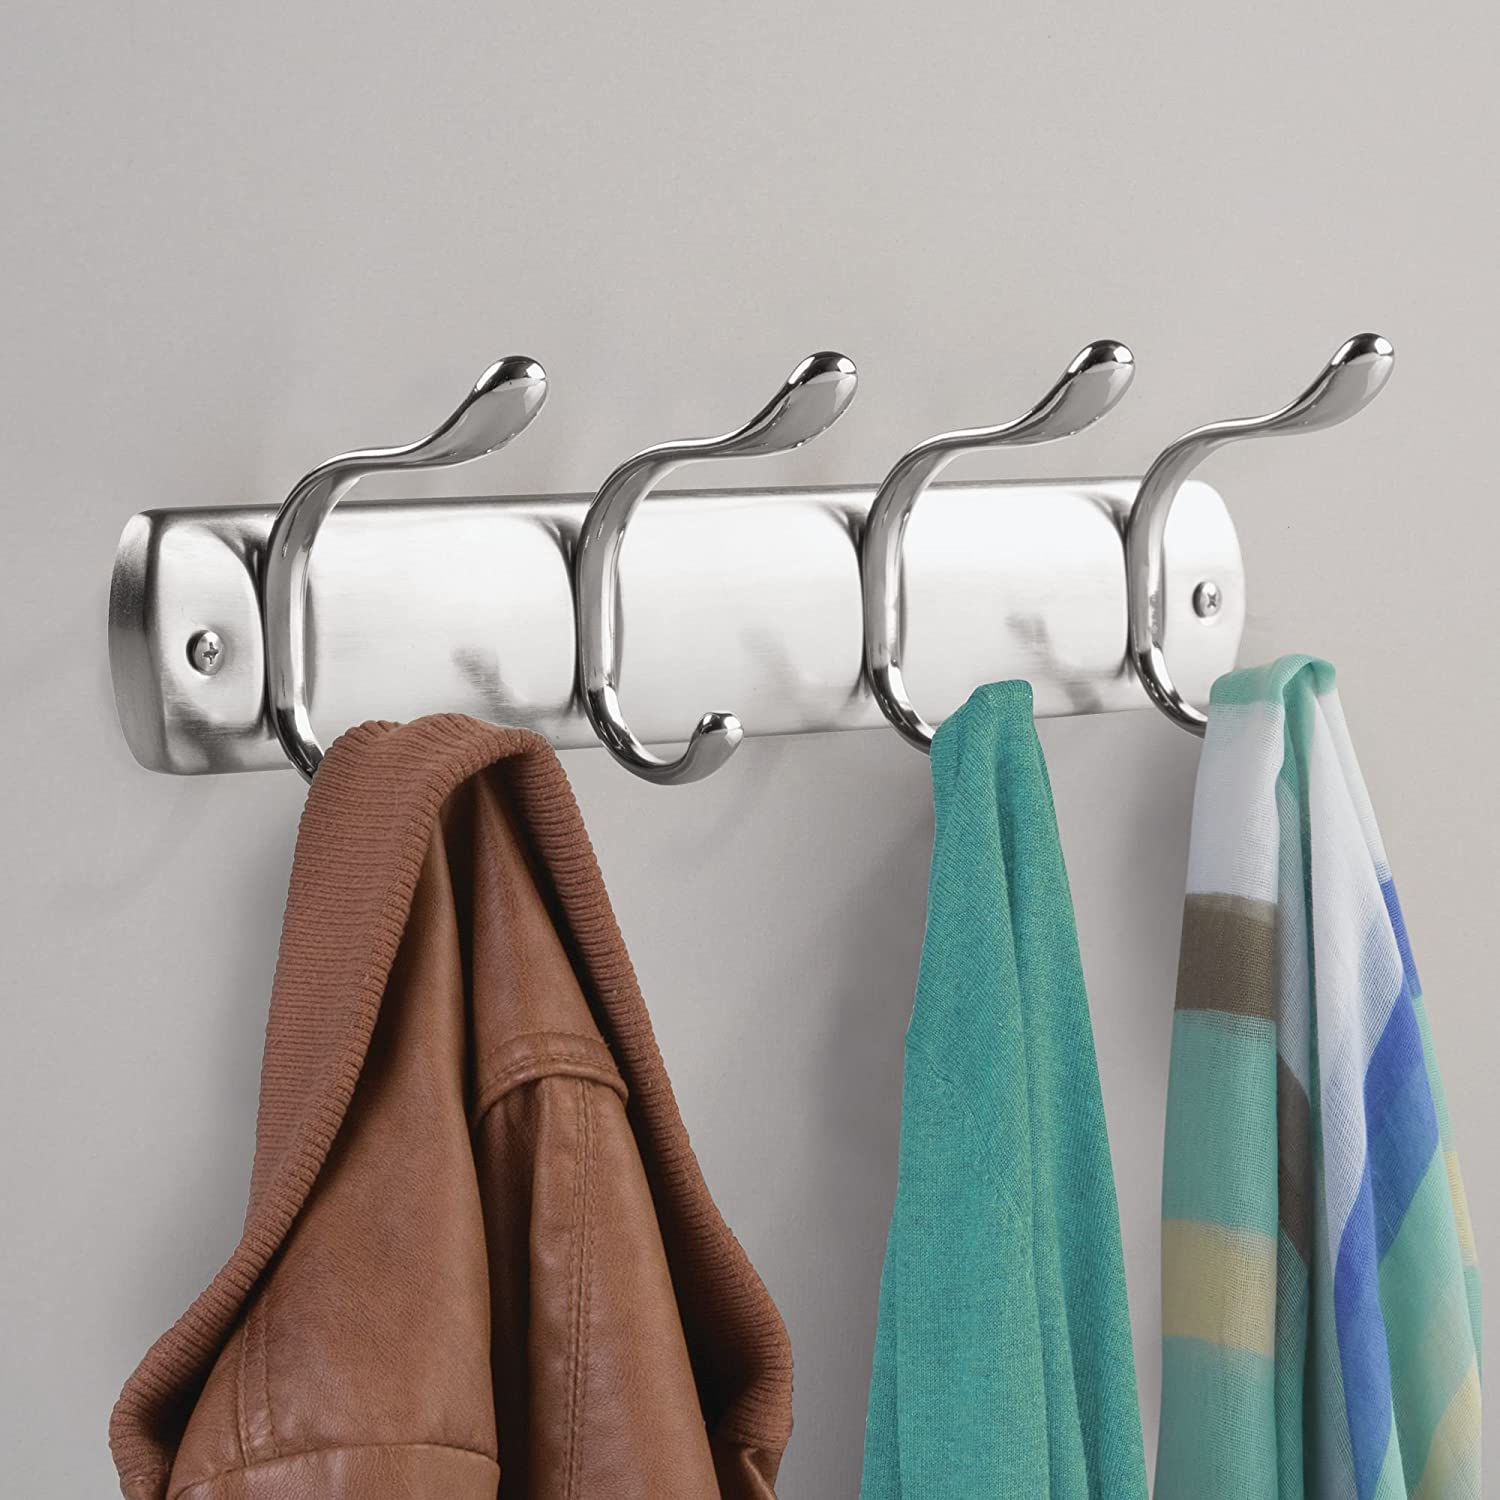 InterDesign Bruschia Colgador de Pared, Perchero de Metal con 4 Ganchos para Colgar, Plateado/Plateado Mate